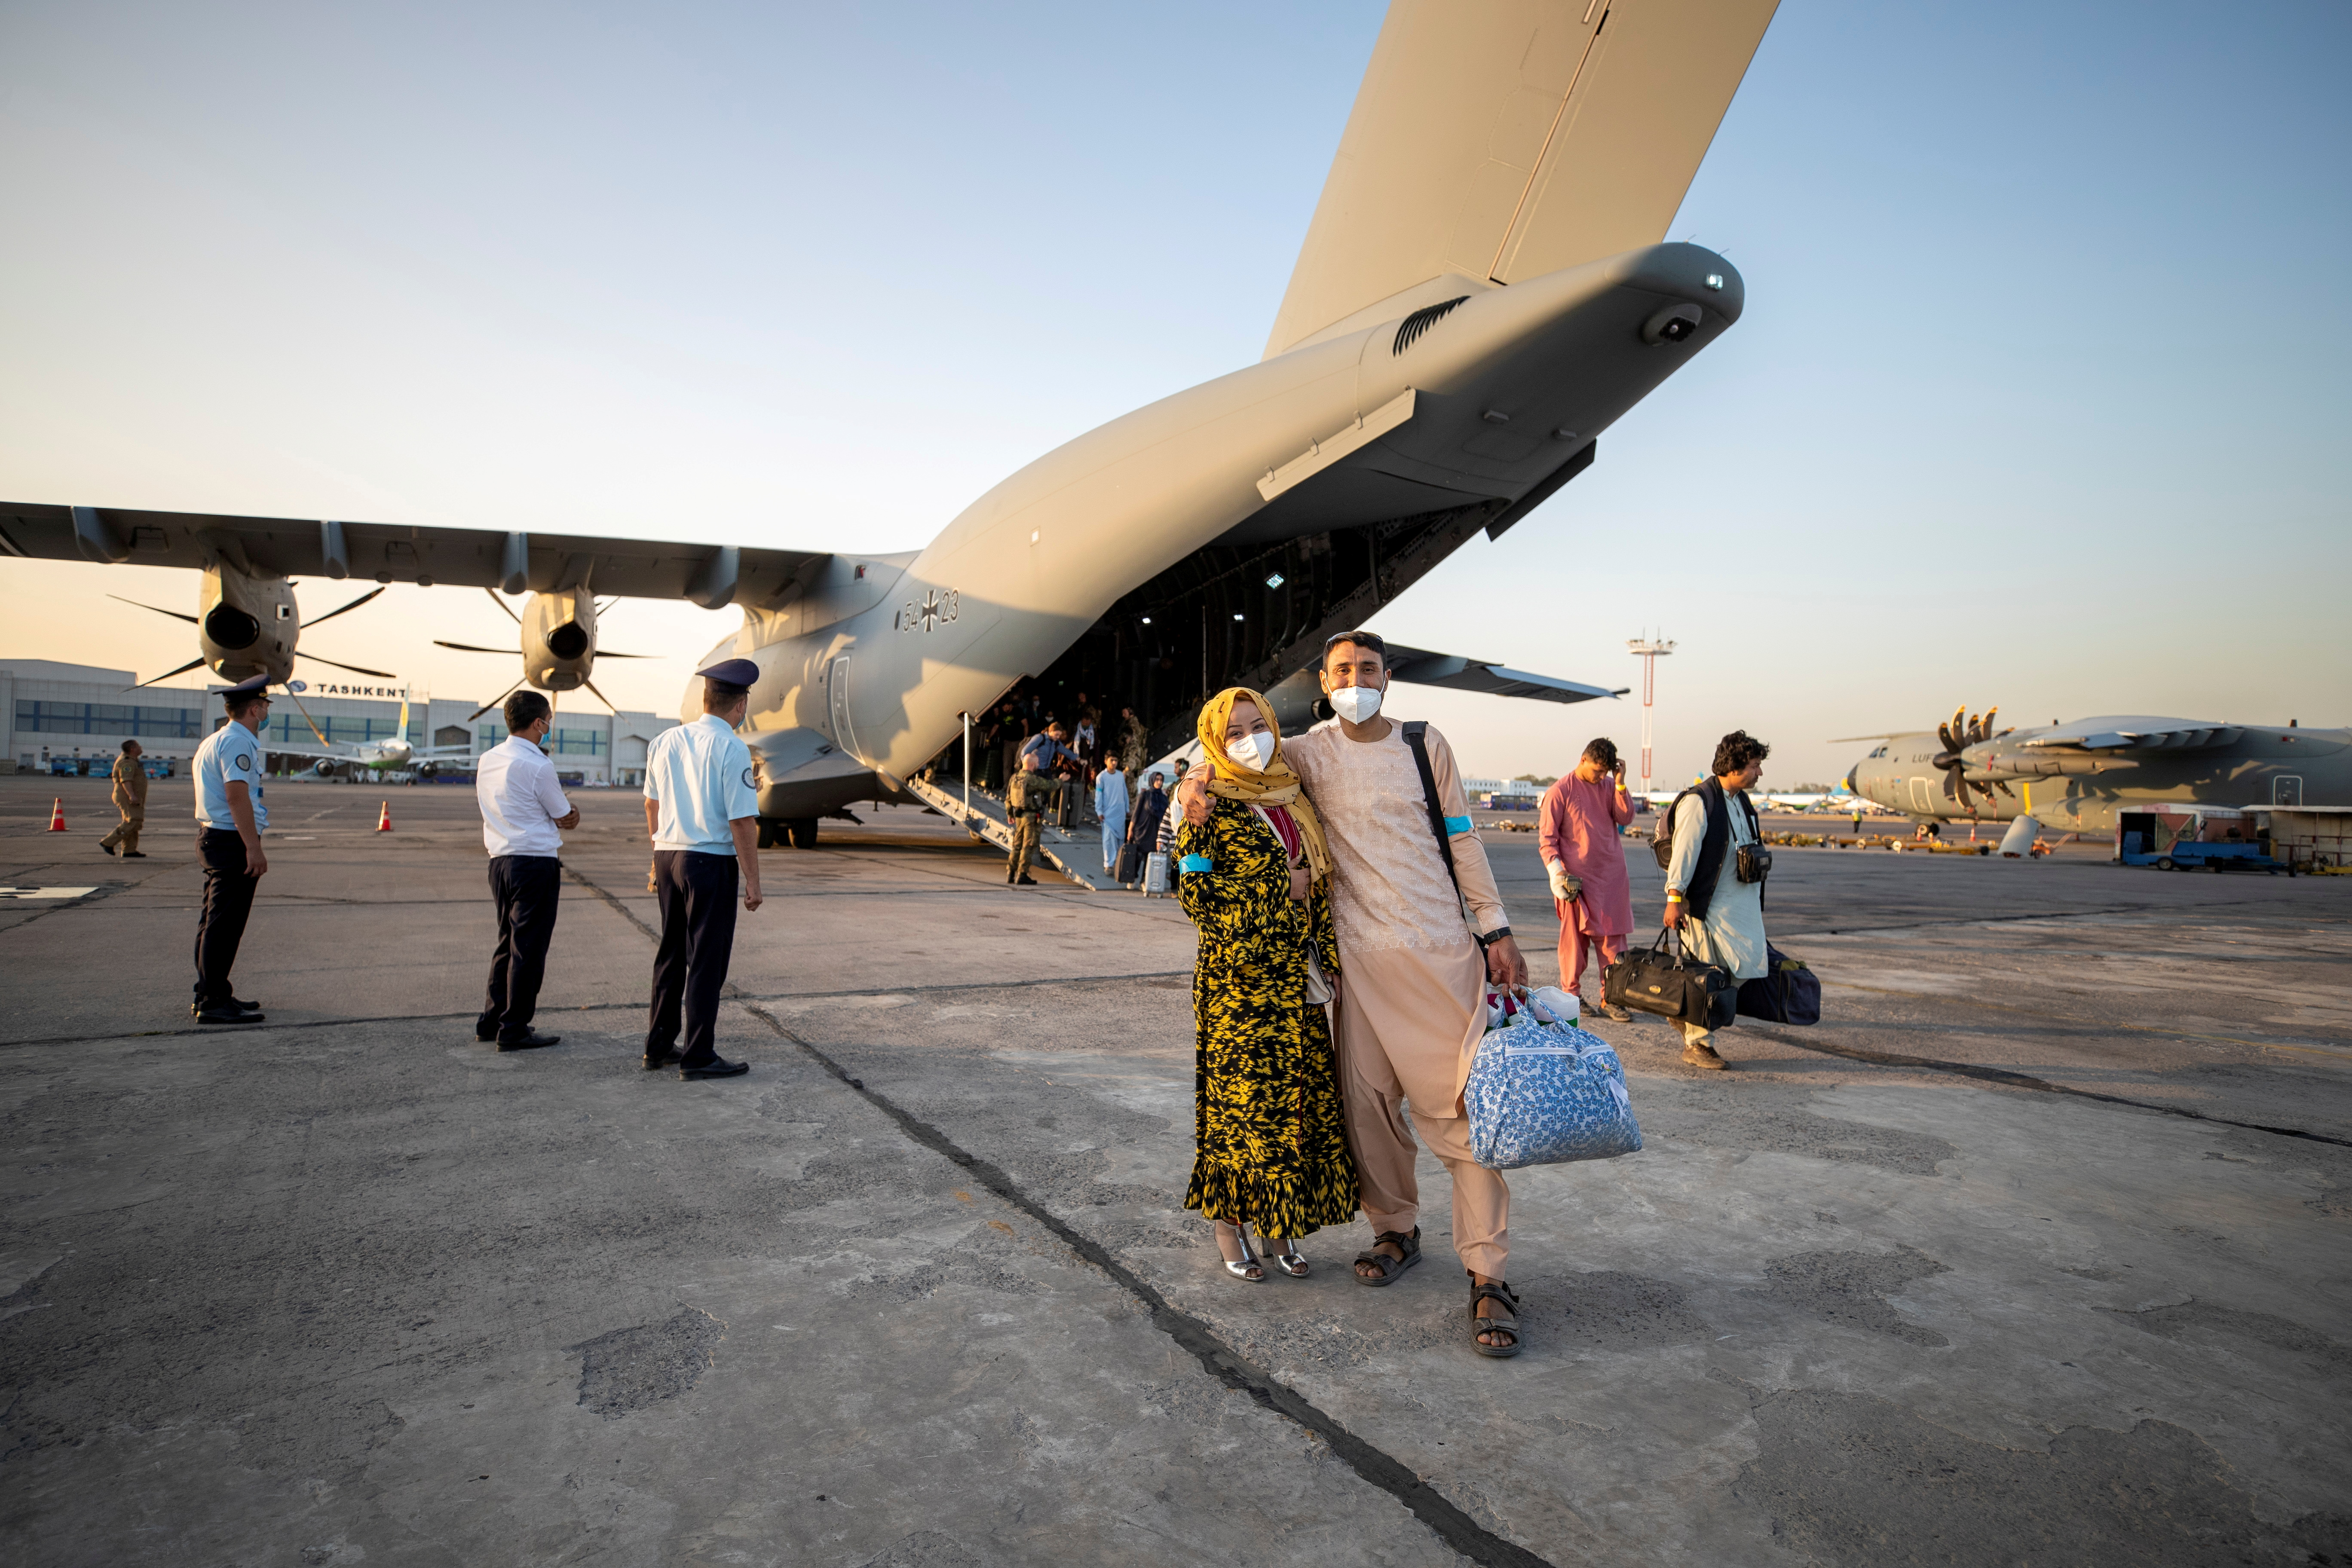 A handout photo obtained from Twitter via @Bw_Einsatz on August 17, 2021 shows evacuees from Afghanistan as they arrive in an Airbus A400 transport aircraft of the German Air Force Luftwaffe in Tashkent, Uzbekistan. Marc Tessensohn/Twitter @Bw_Einsatz/Handout via REUTERS